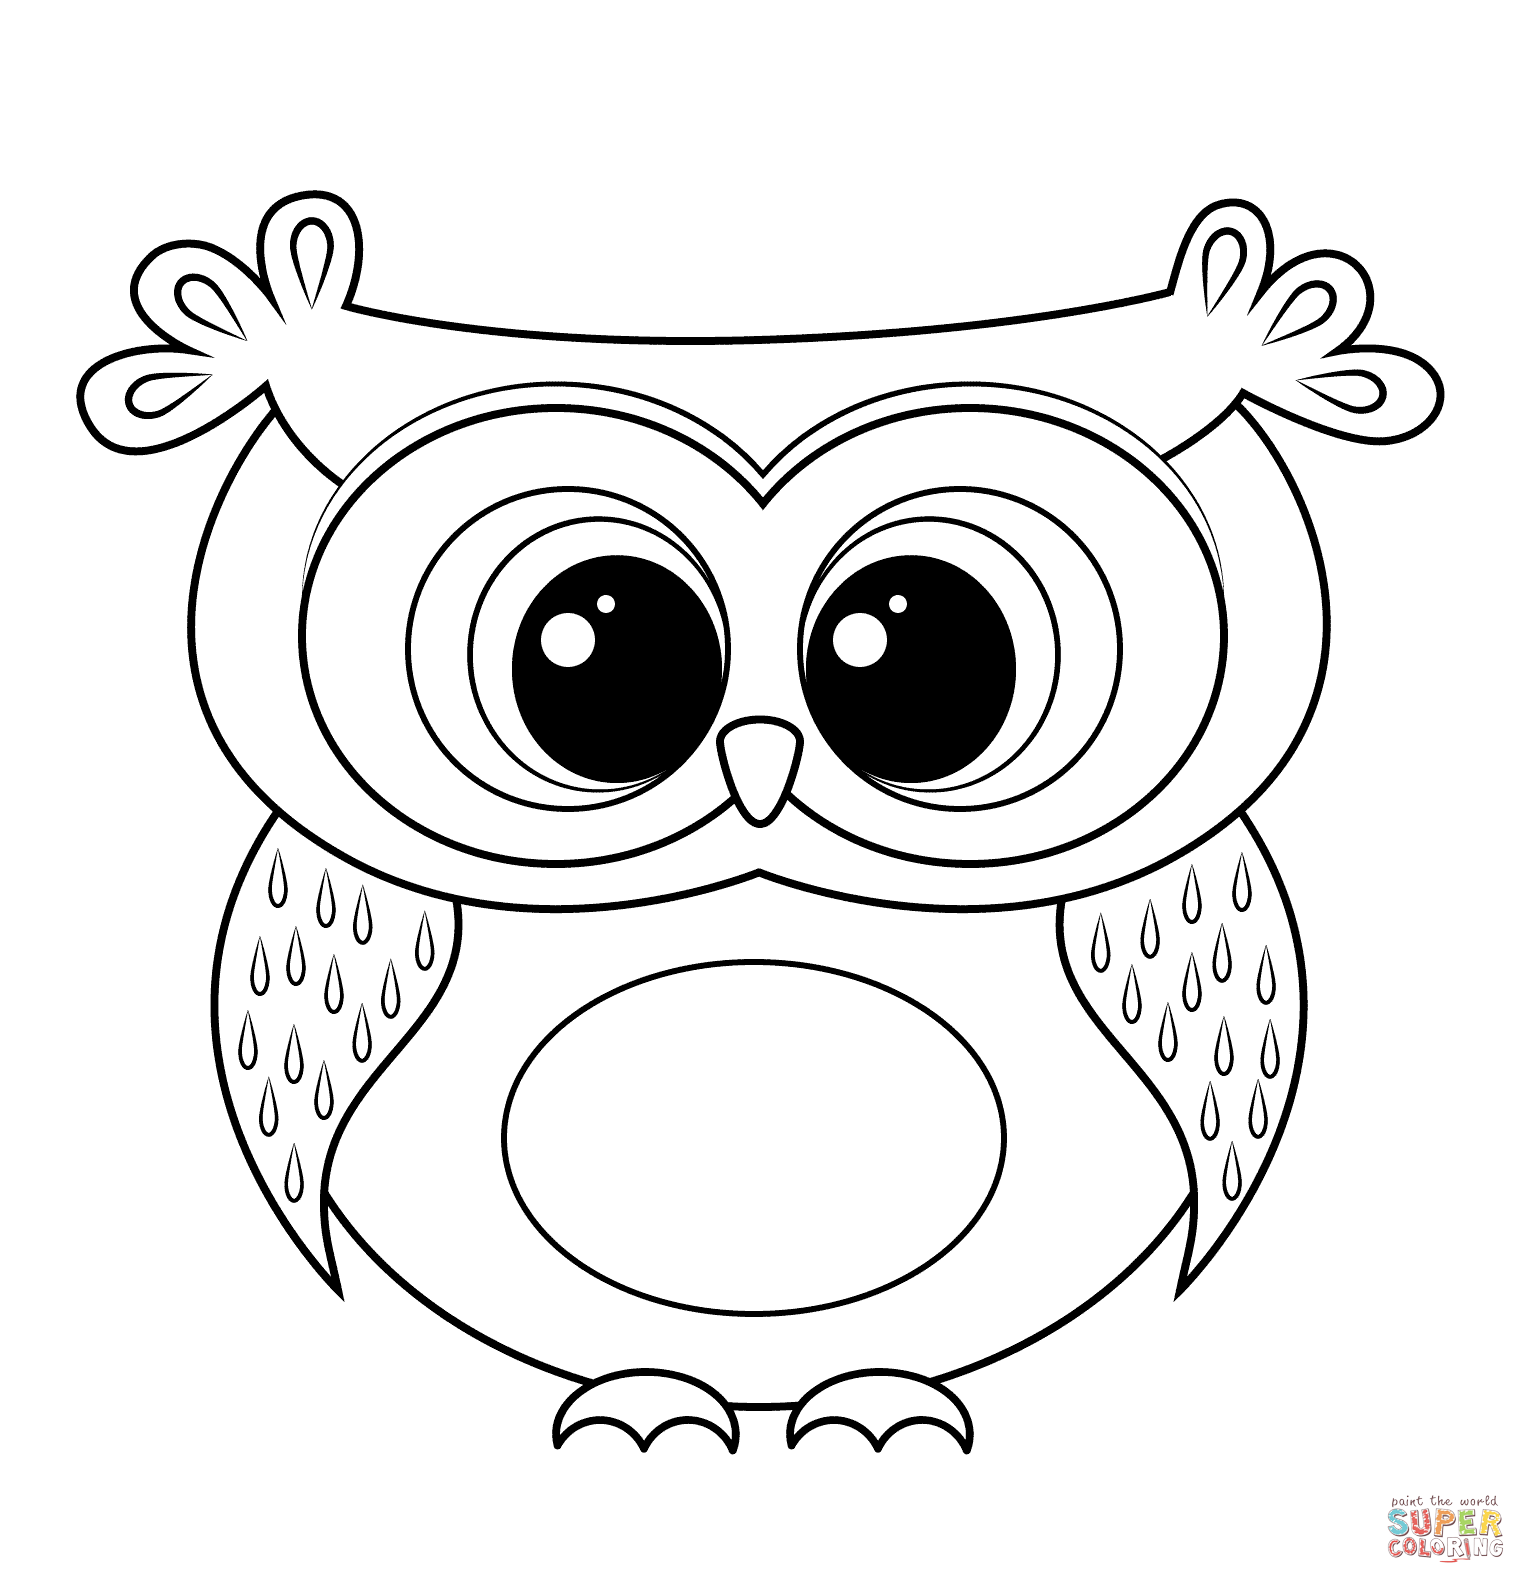 printable owl colouring owl coloring pages print free printable cute owl coloring colouring owl printable